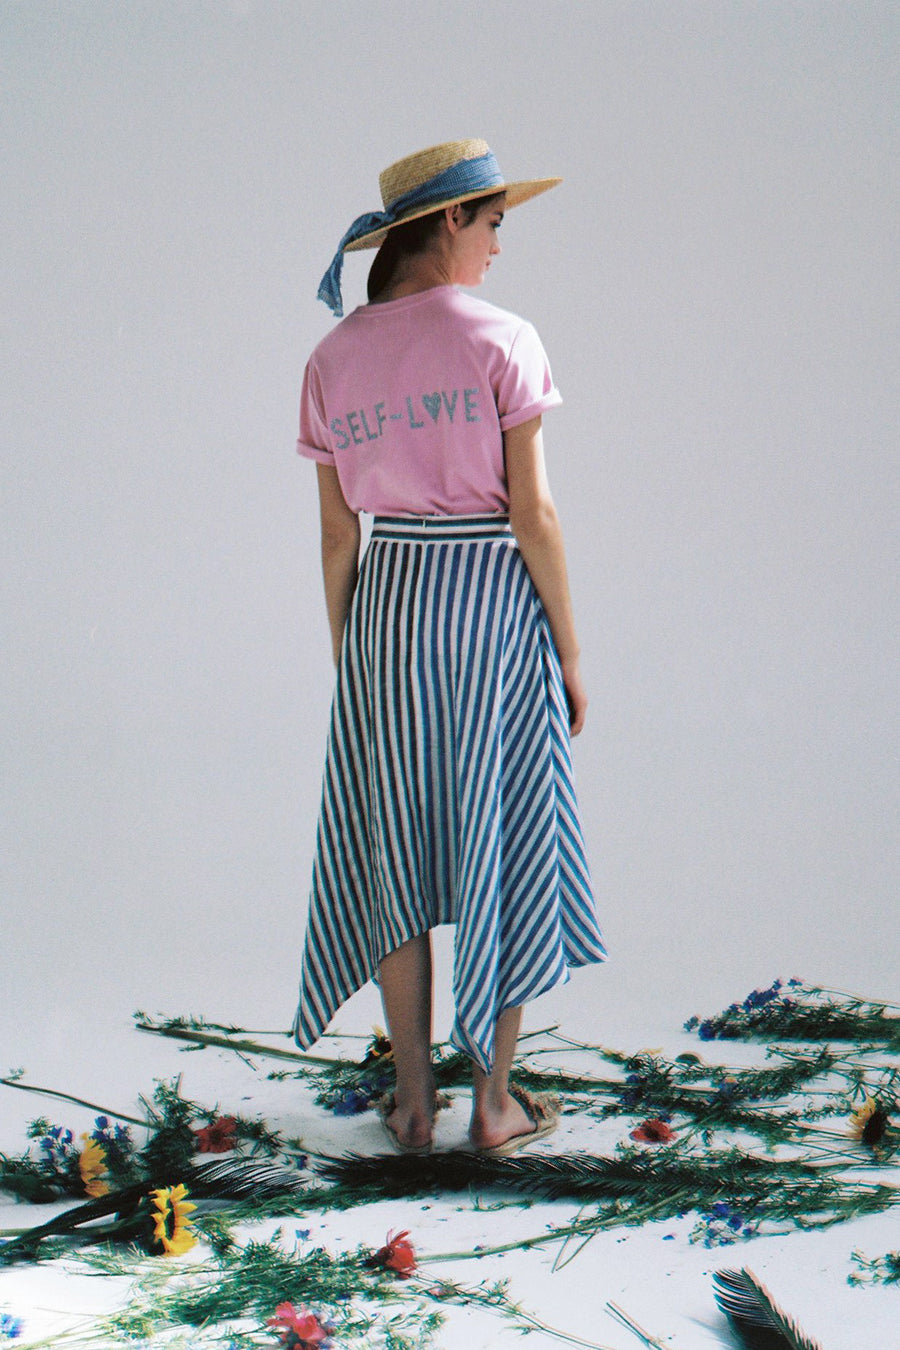 [SELF-LOVE] LOGO T SHIRT_PINK